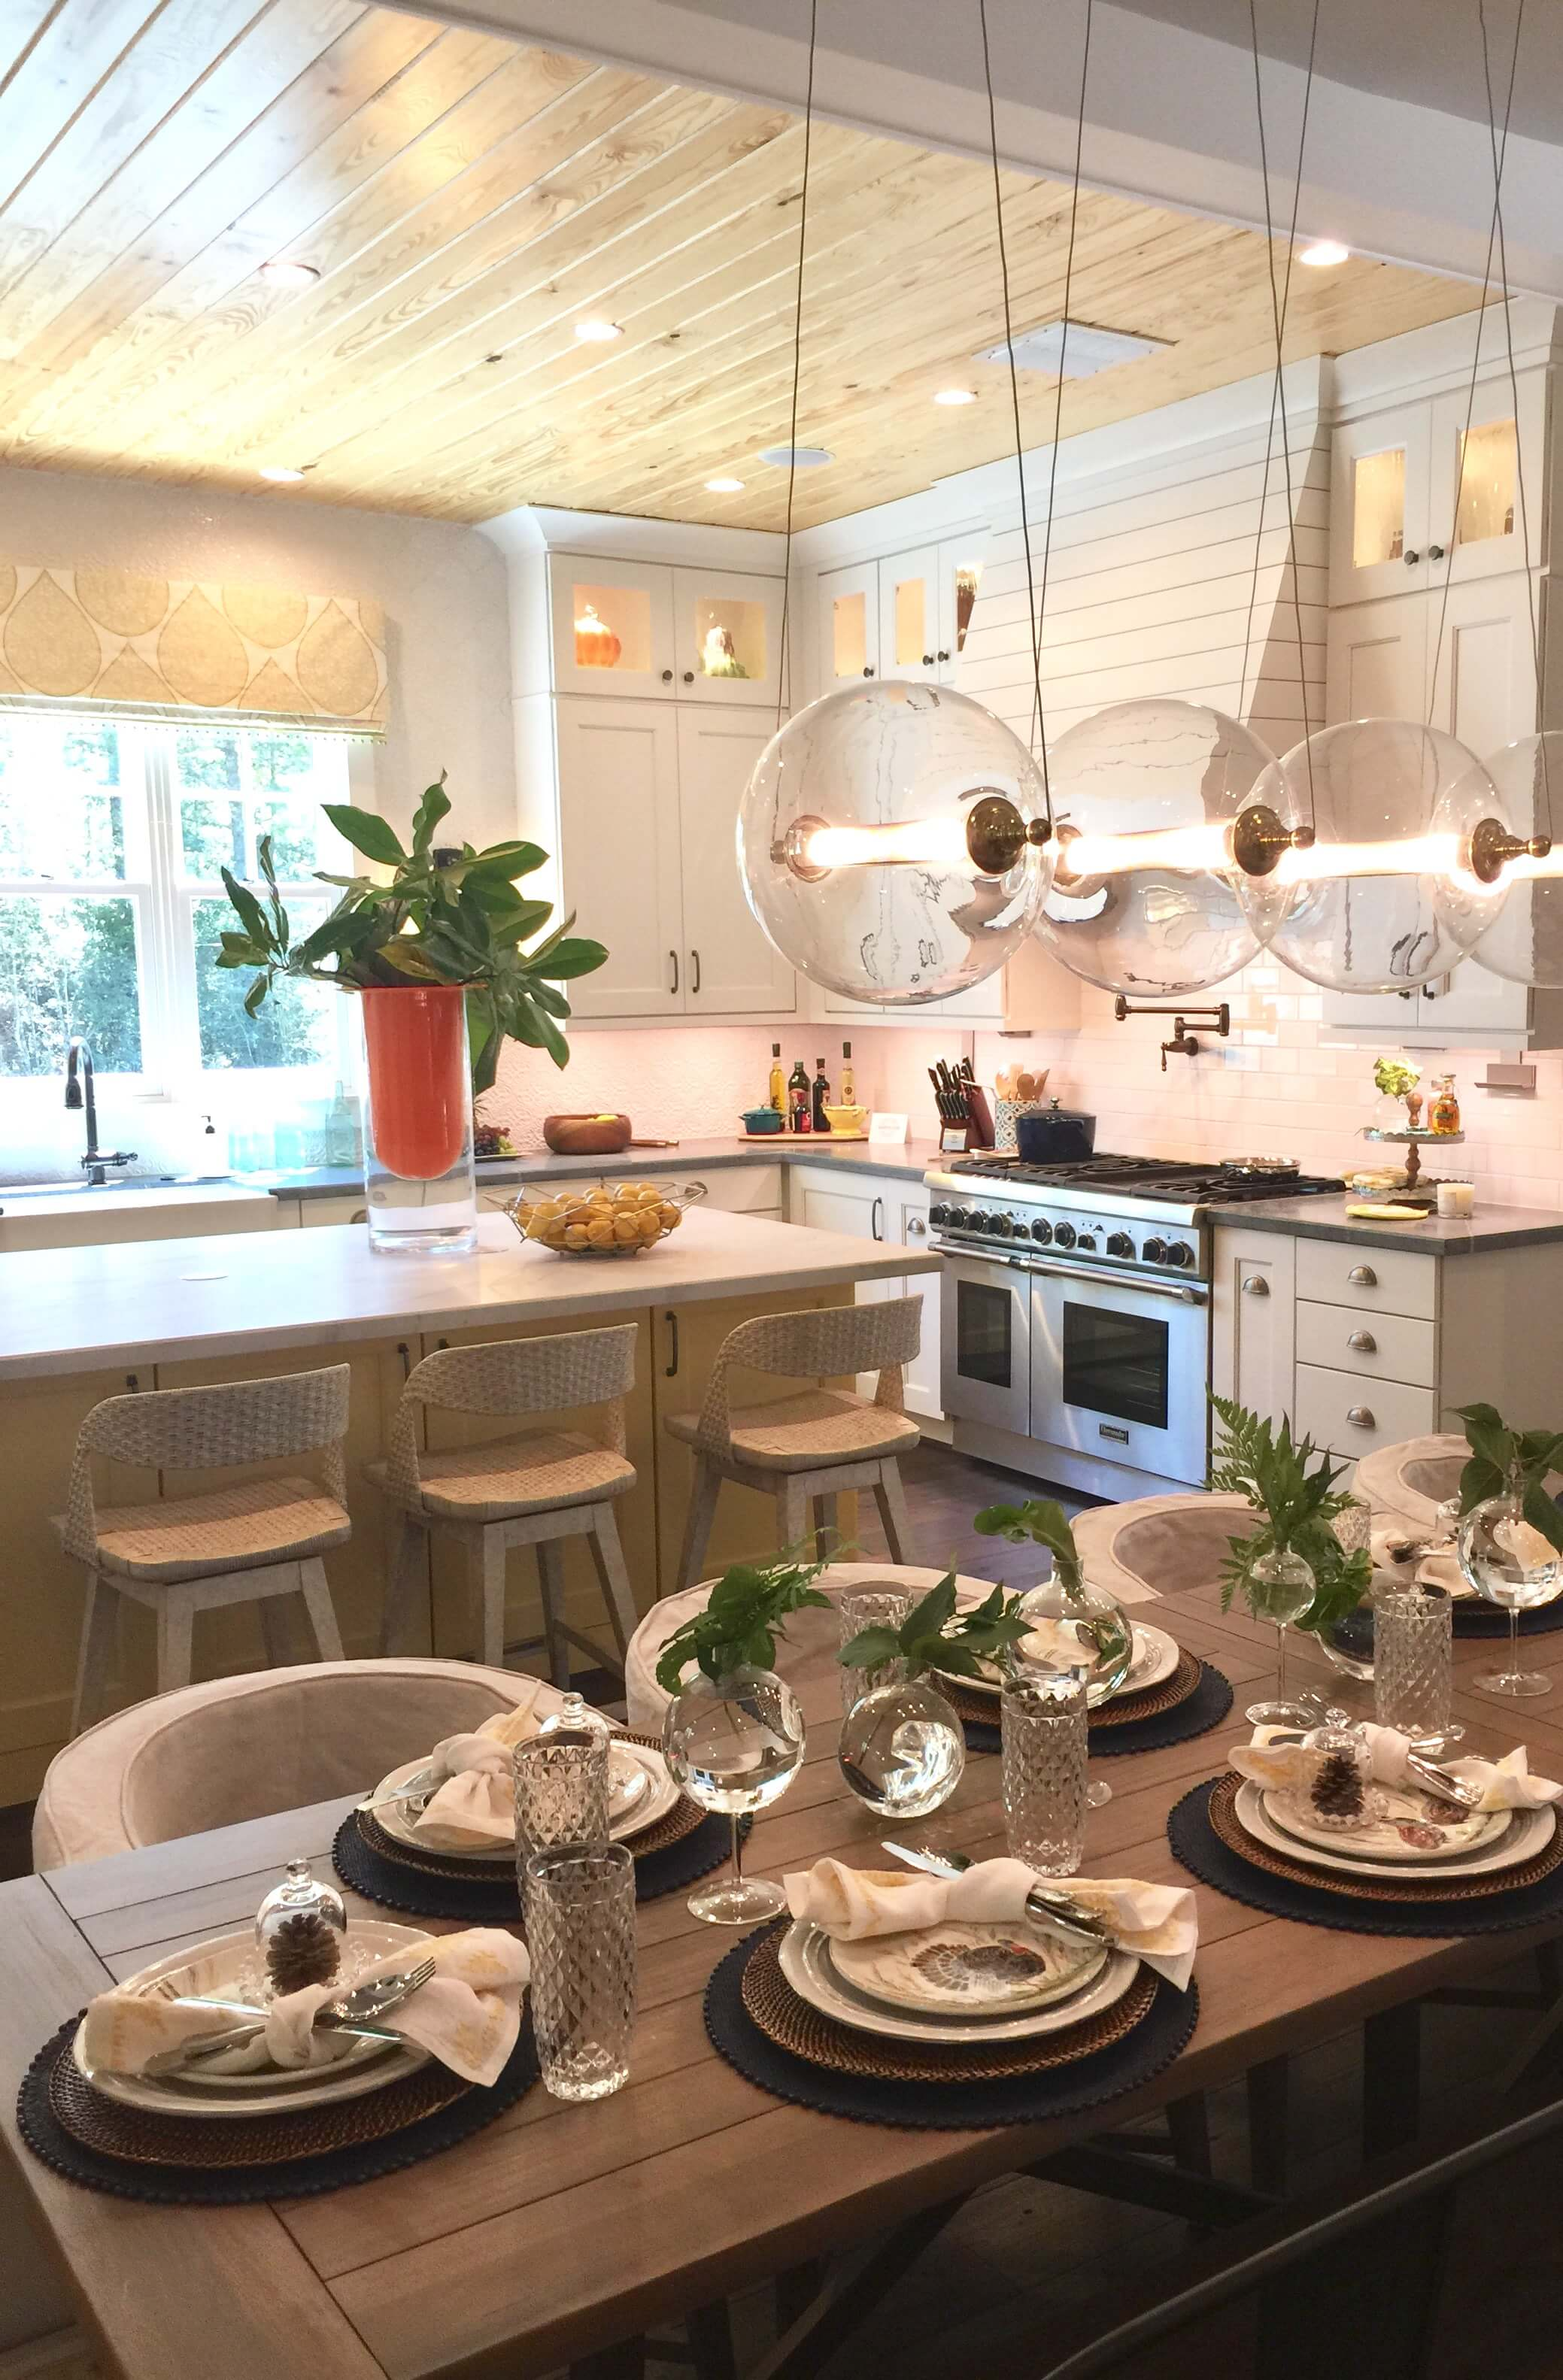 Southern Living Showcase Home - Kitchen with shiplap hood and ceiling and yellow island, Designed by Chairma Design Group #kitchenisland #kitchendesignideas